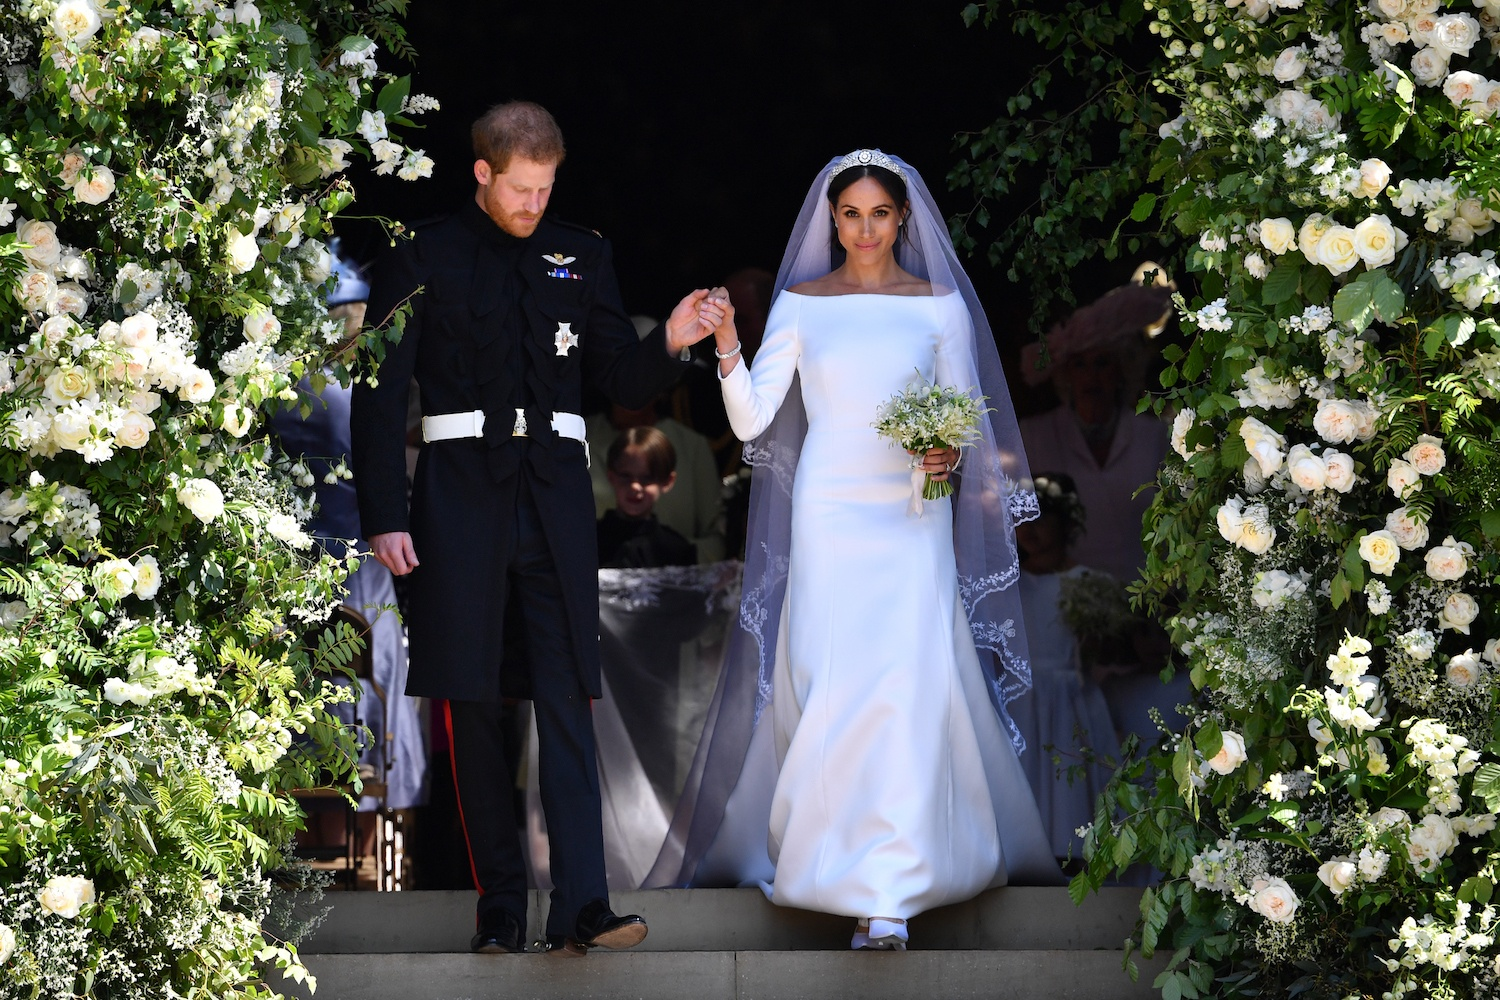 The Real Meaning Behind Meghan Markles Stunning Royal Wedding Dress